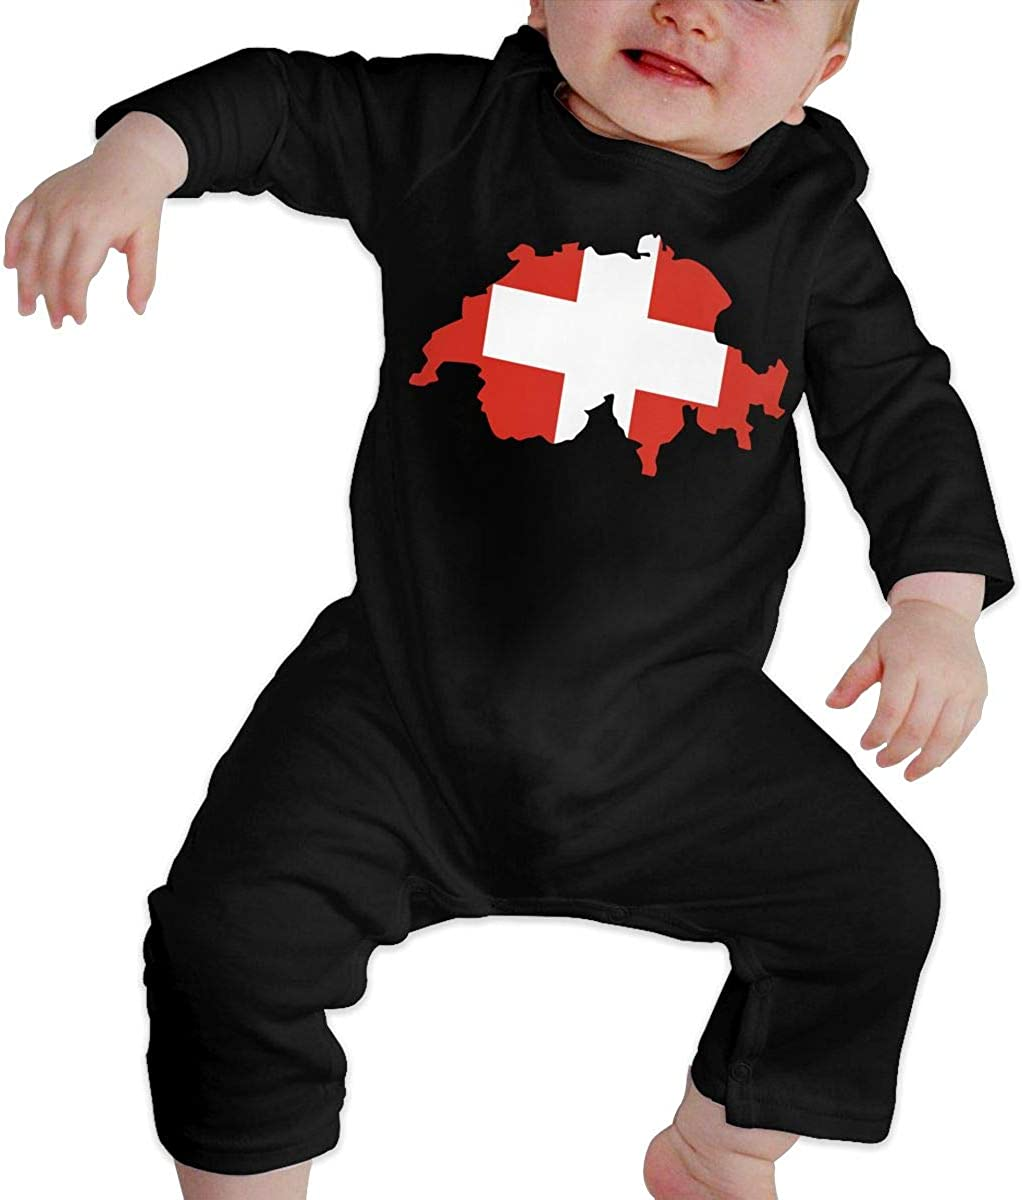 YELTY6F Switzerland Flag Map Printed Newborn Infant Baby Boy Girl One-Piece Suit Long Sleeve Outfits Black